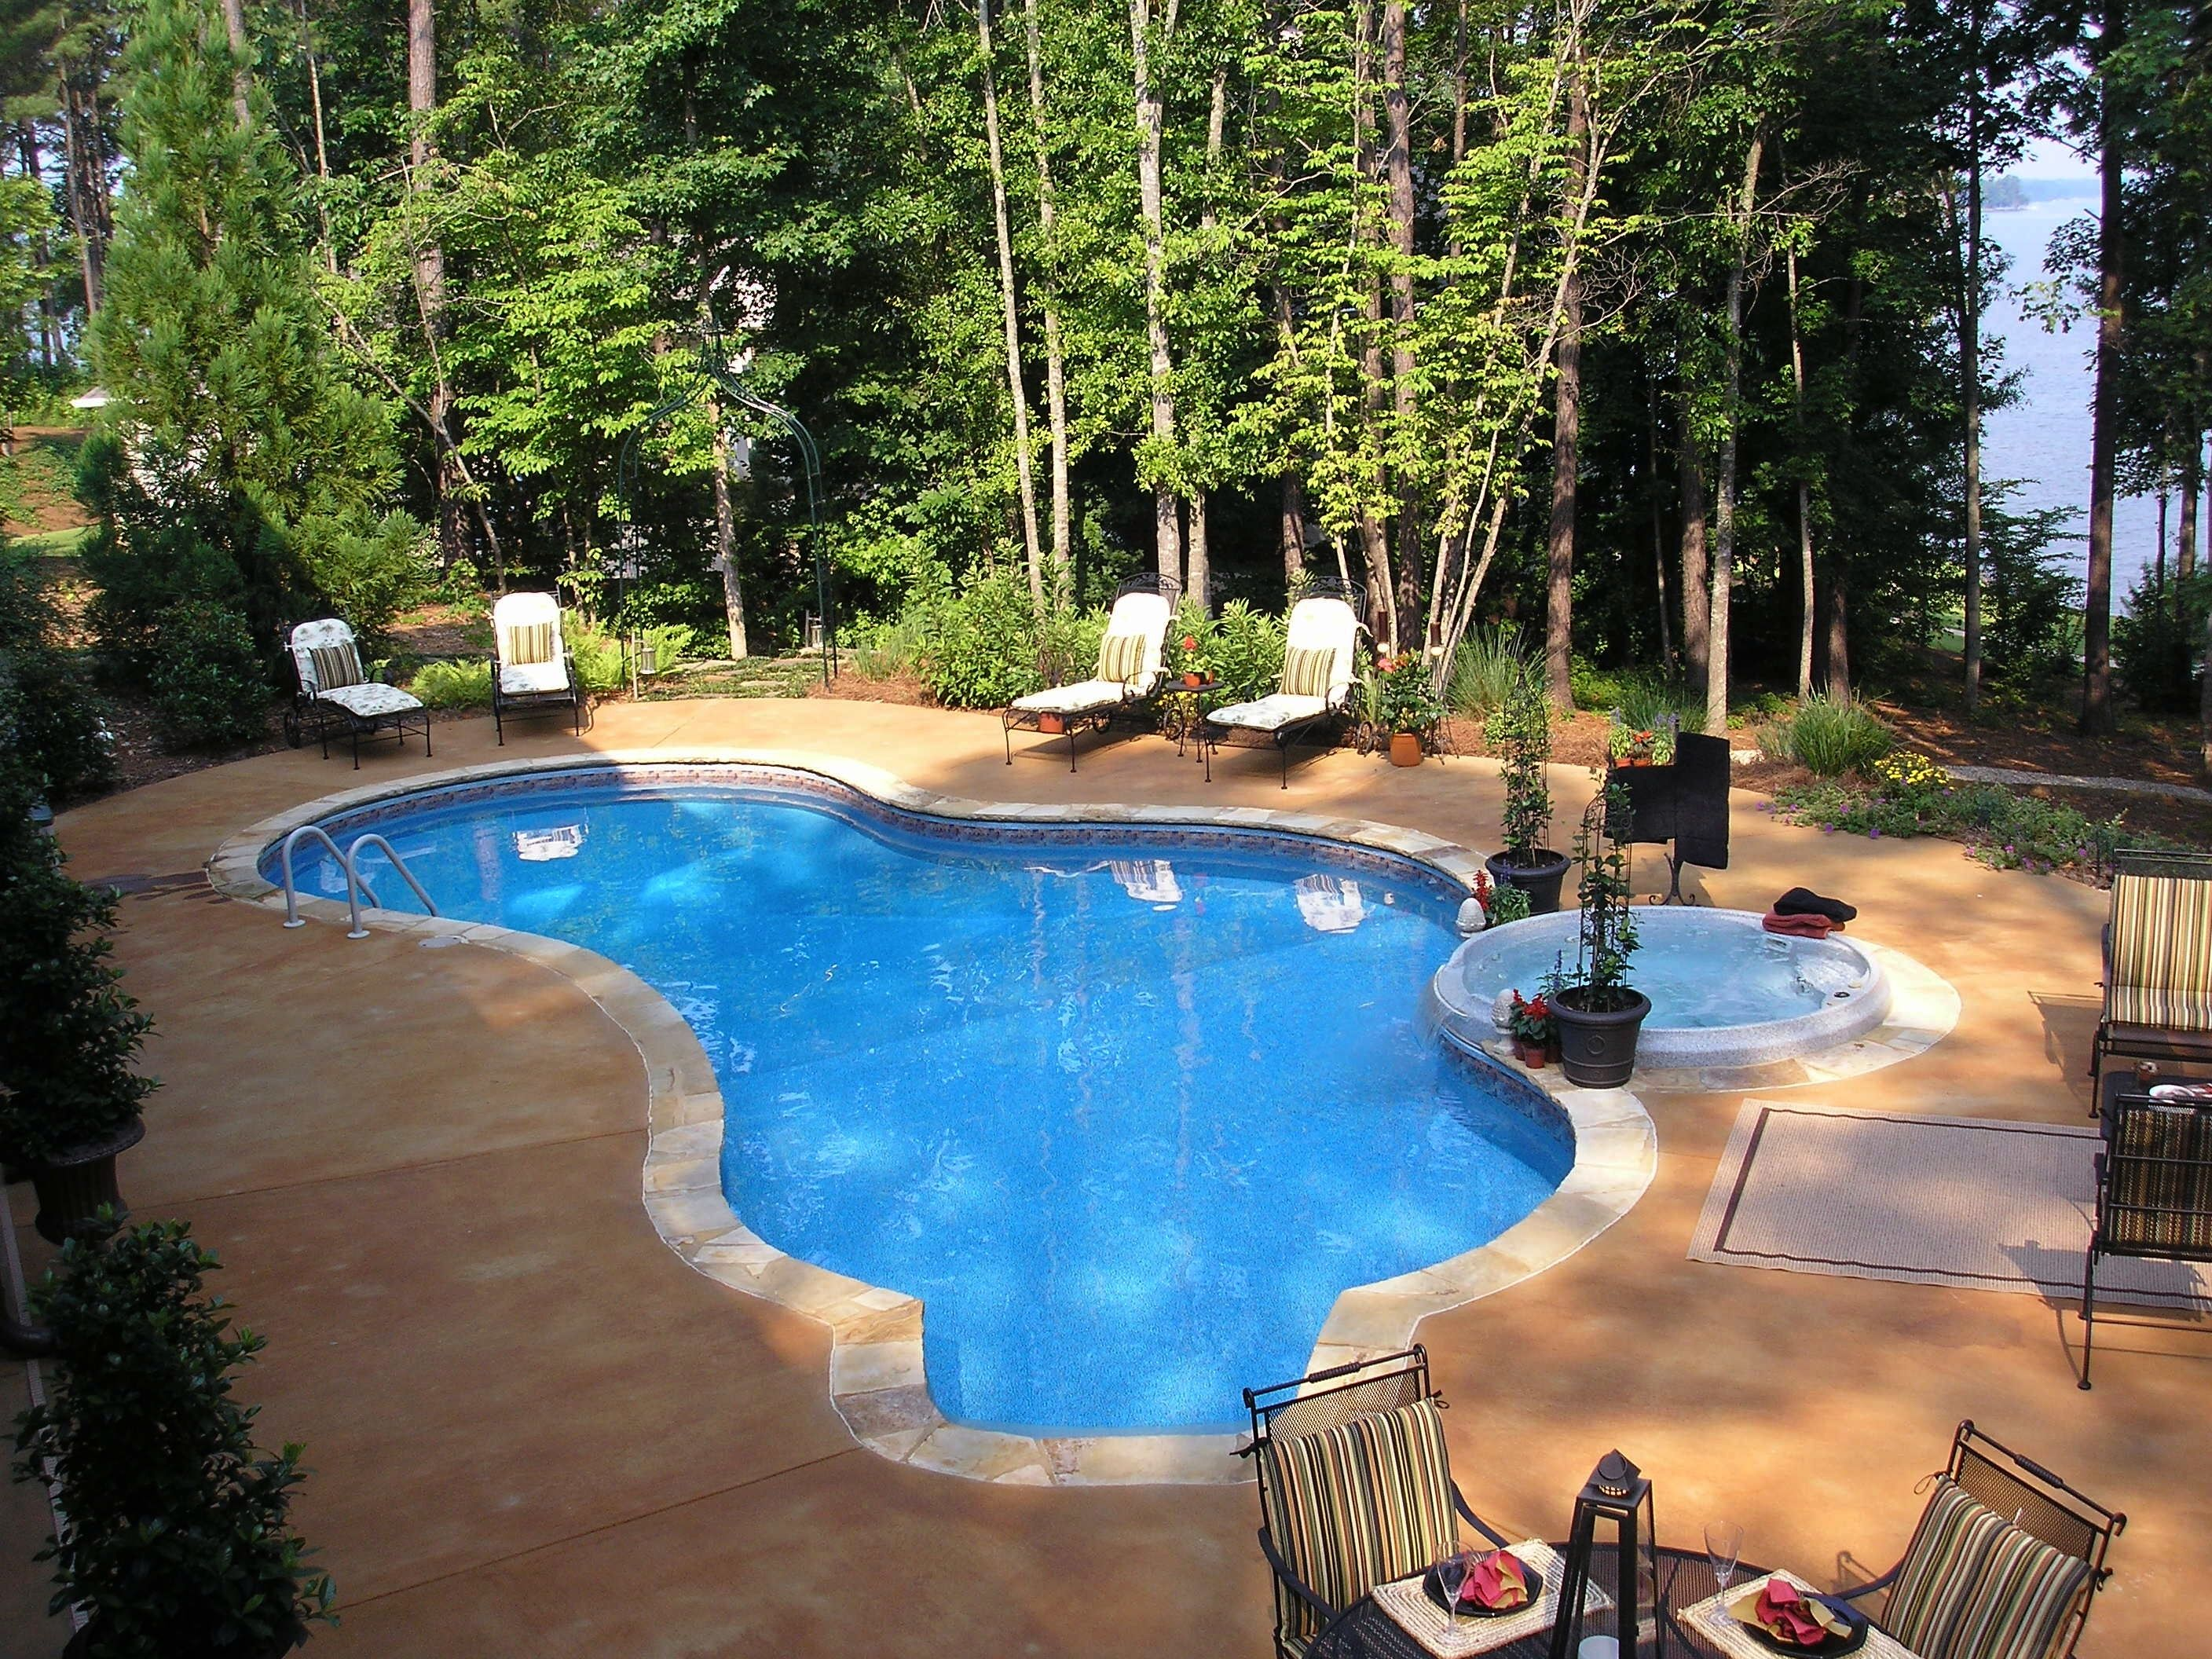 Inground Swimming Pools, On Ground Swimming Pools, Pools In New